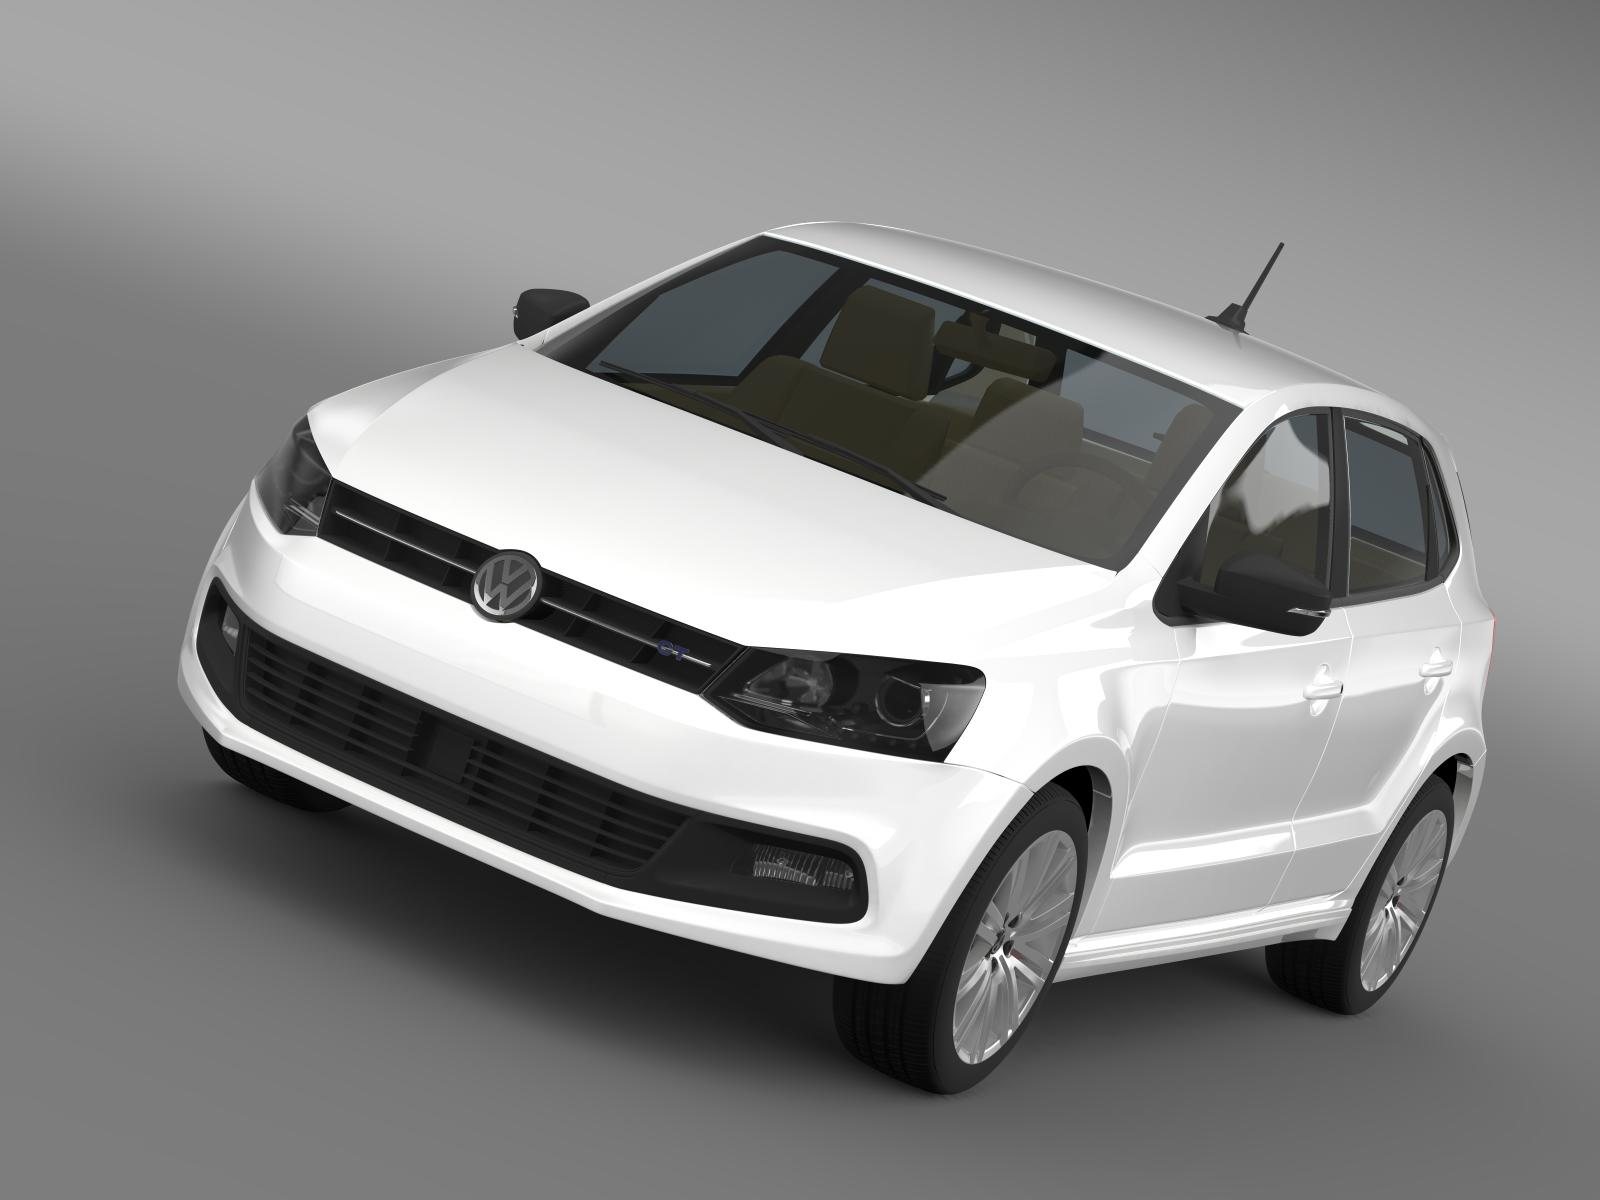 volkswagen polo bluegt 5d 2014 3d загвар 3ds max fbx c4d lwo ma mb hrc xsi obj 161939